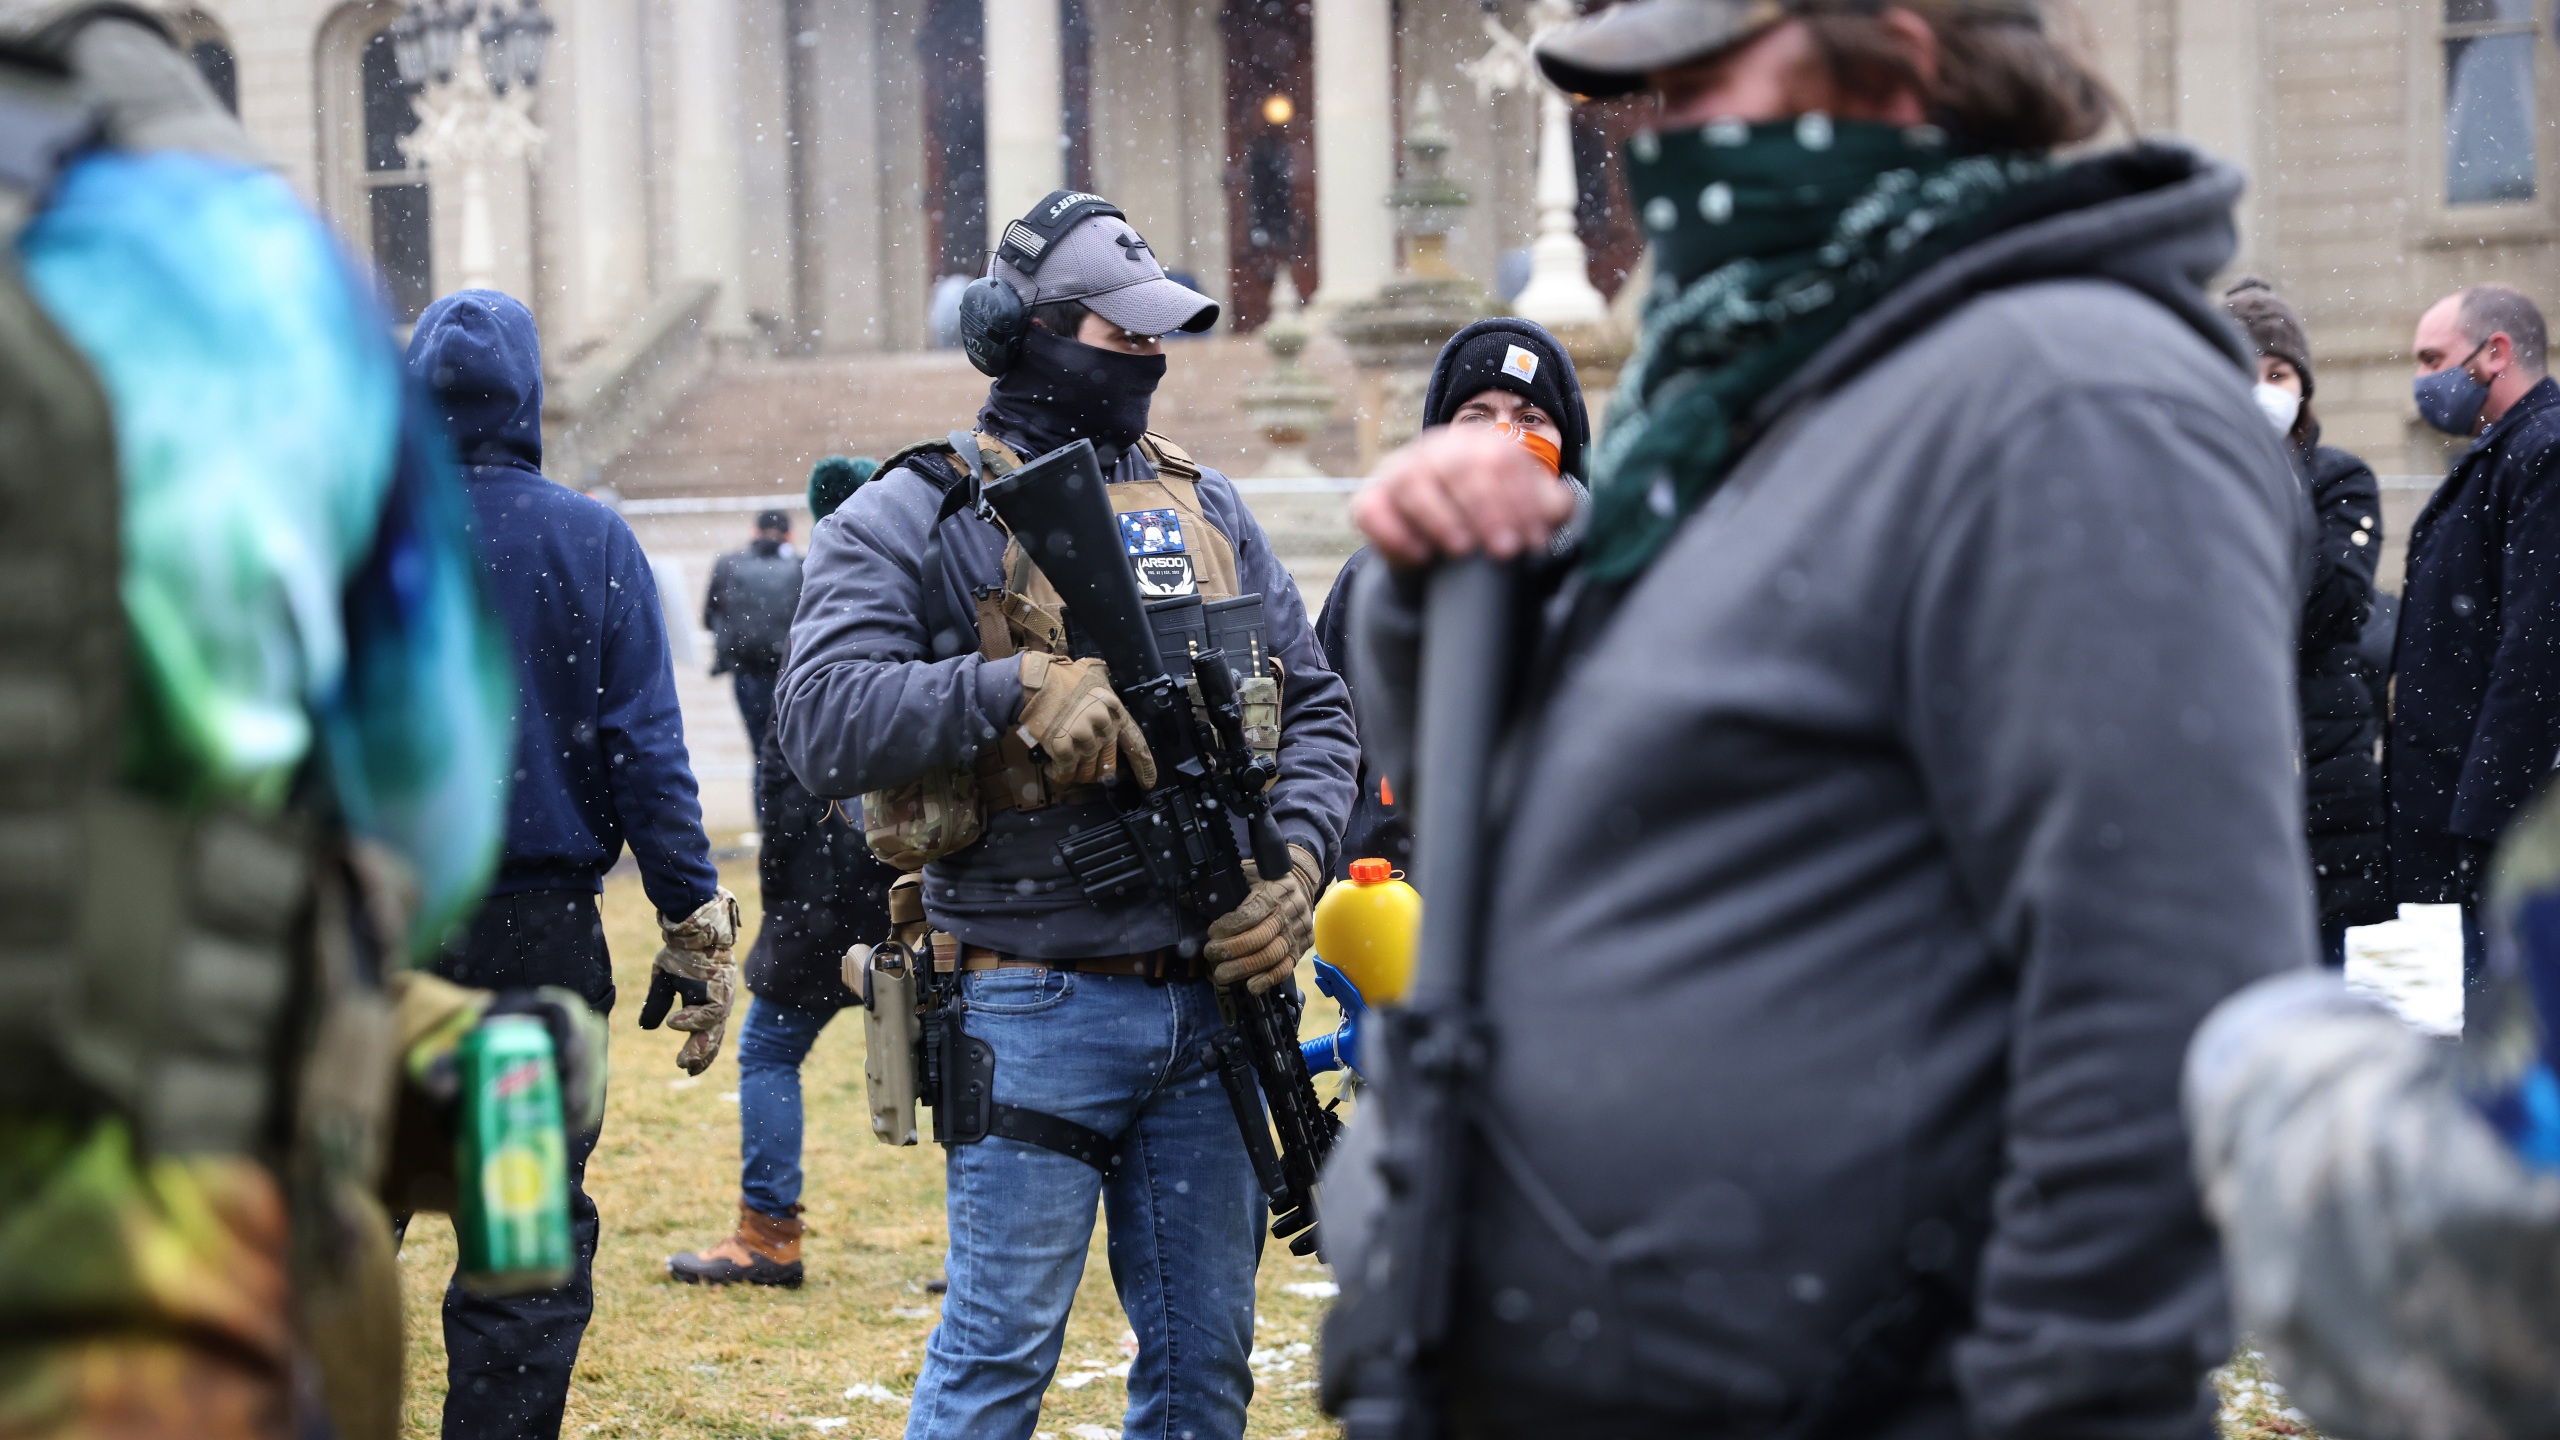 Armed demonstrators protest outside of the Michigan state capital building on Jan. 17, 2021 in Lansing, Michigan. (Scott Olson/Getty Images)